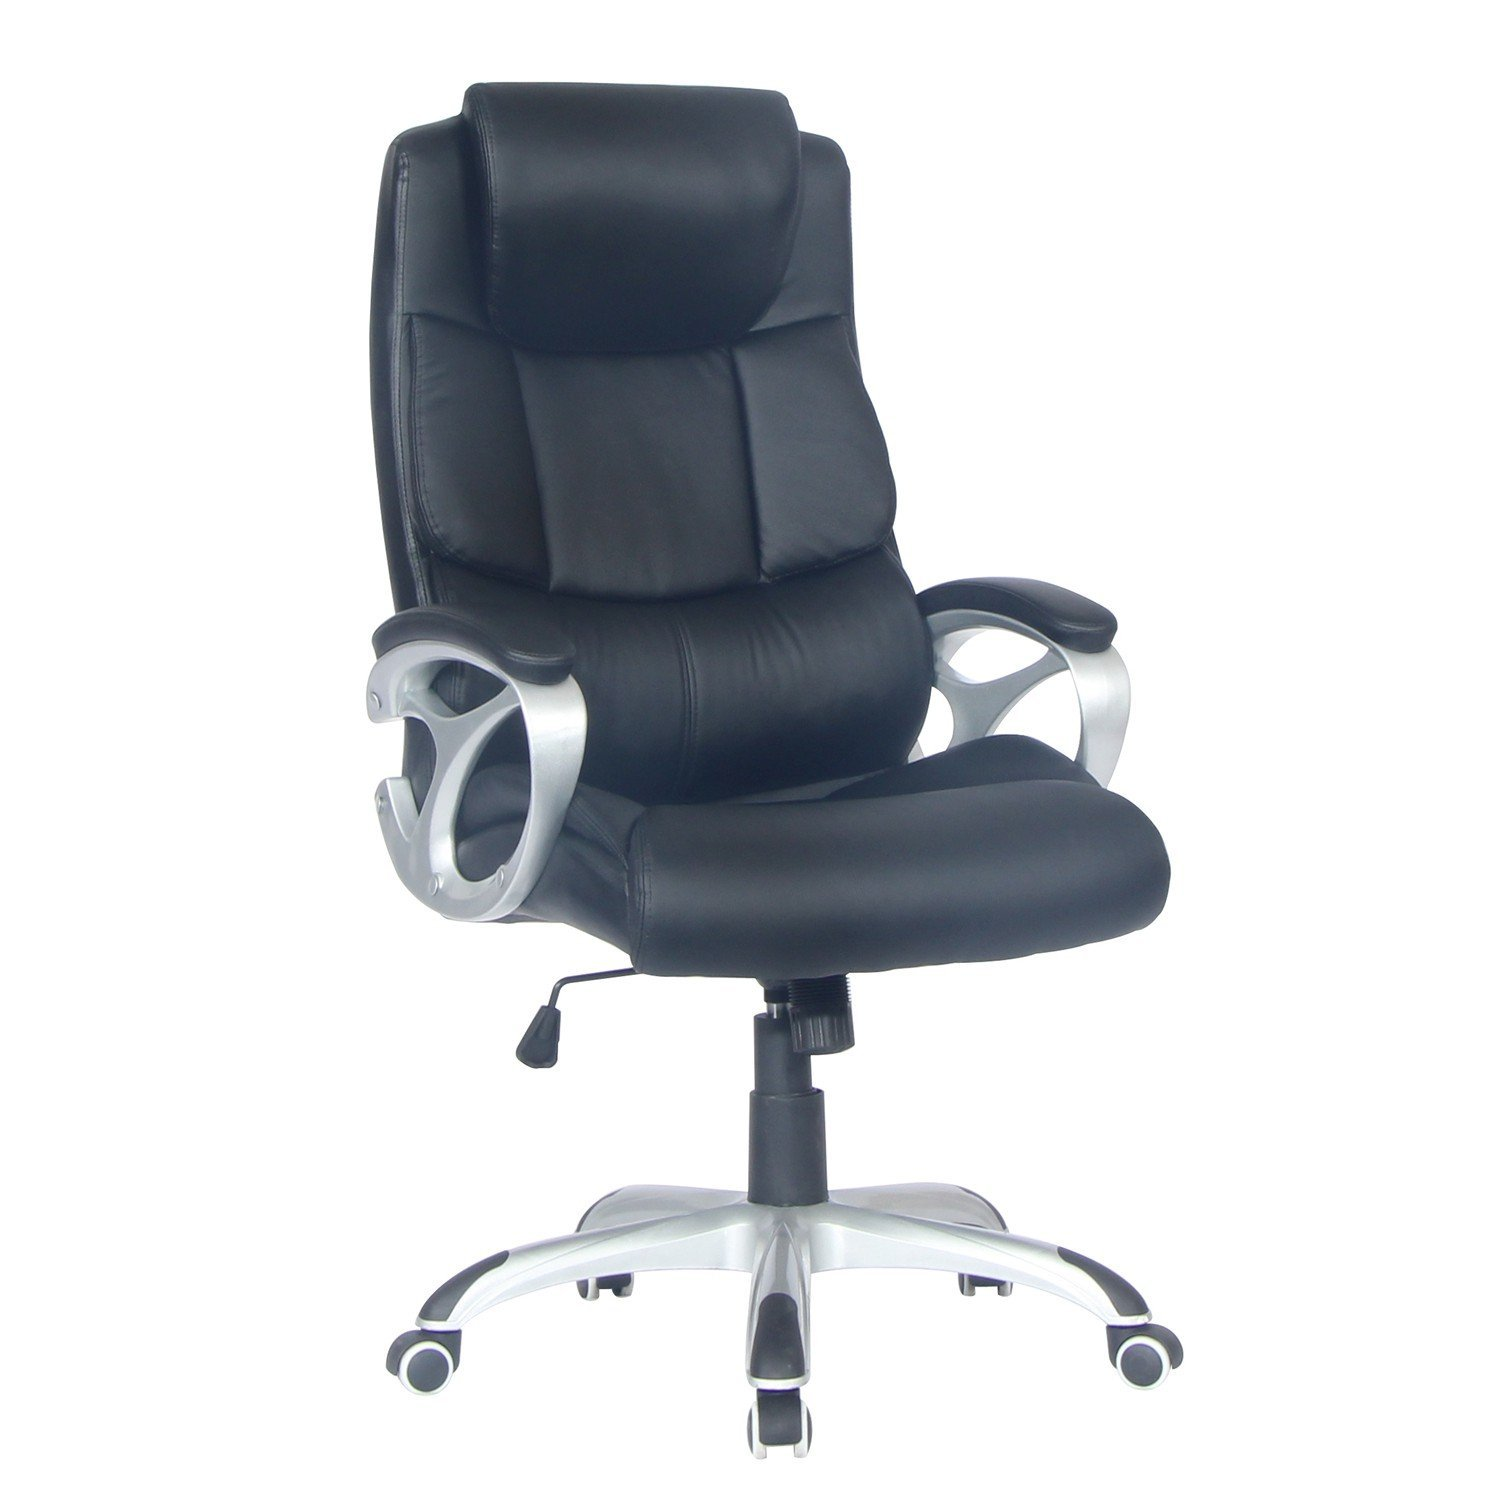 Get Quotations Tygerclaw Tyfc2102 Executive High Back Leather Office Chair With Headrest